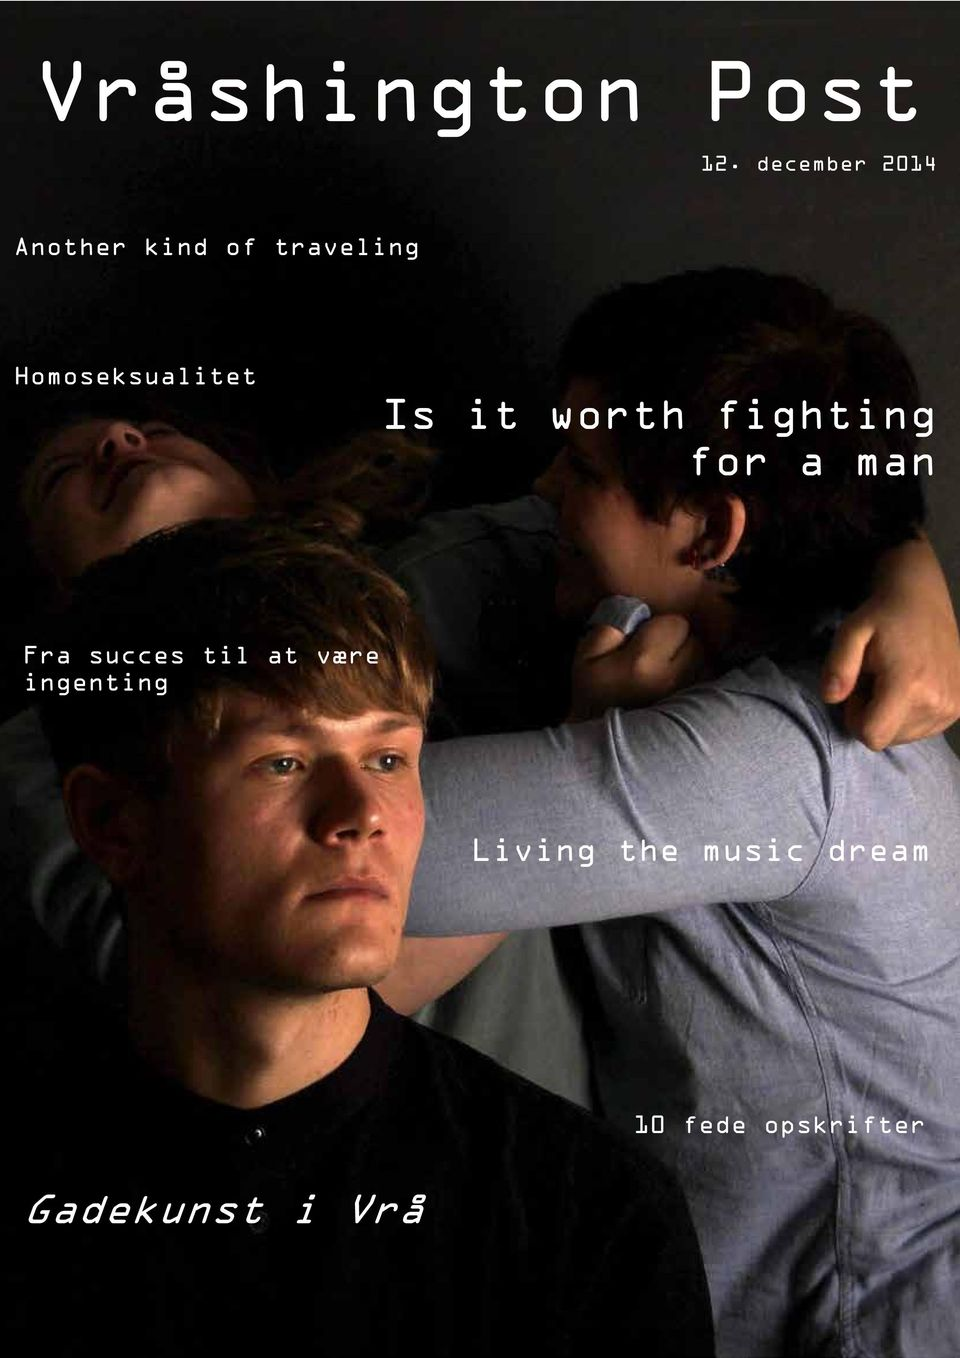 Homoseksualitet Is it worth fighting for a man